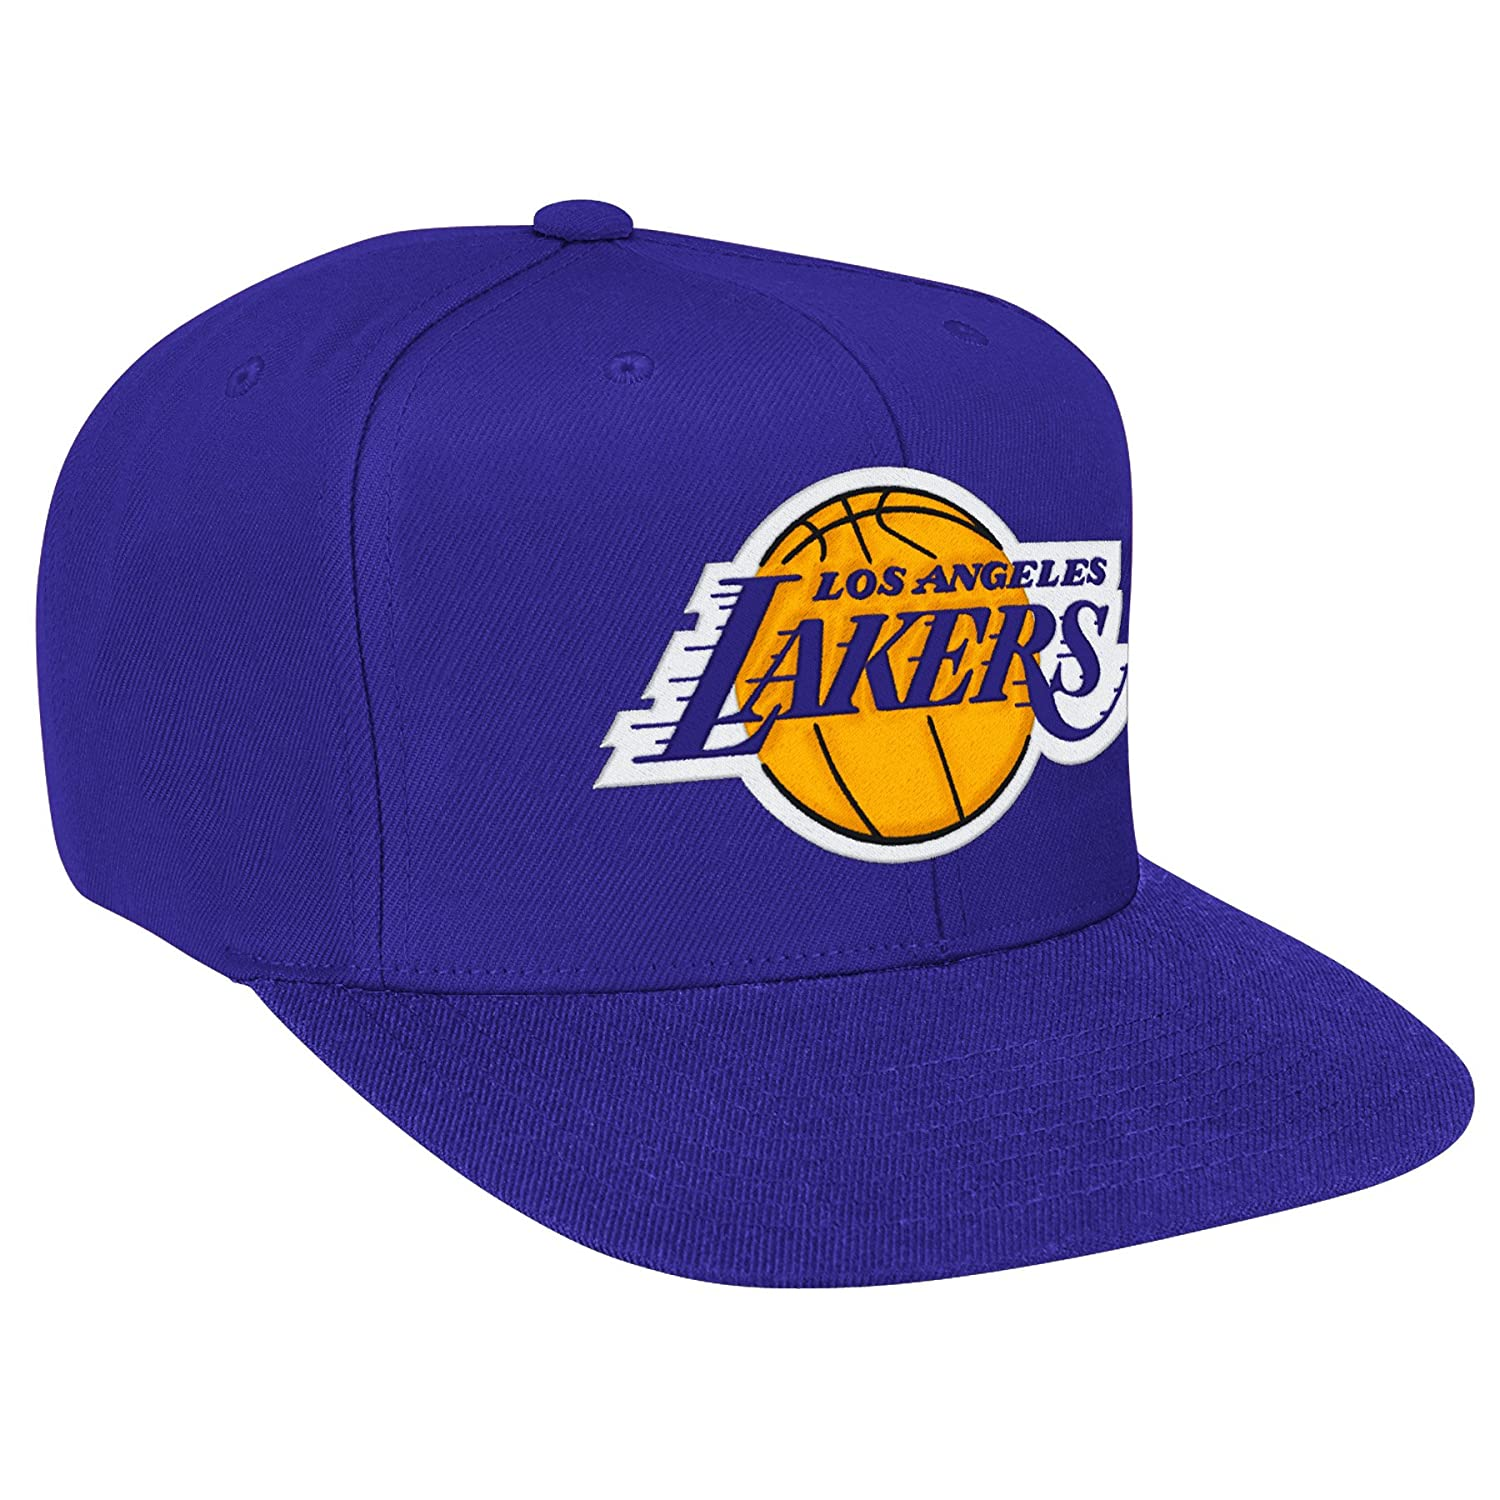 Mitchell /& Ness Los Angeles Lakers NBA Wool Solid Adjustable Snapback Hat